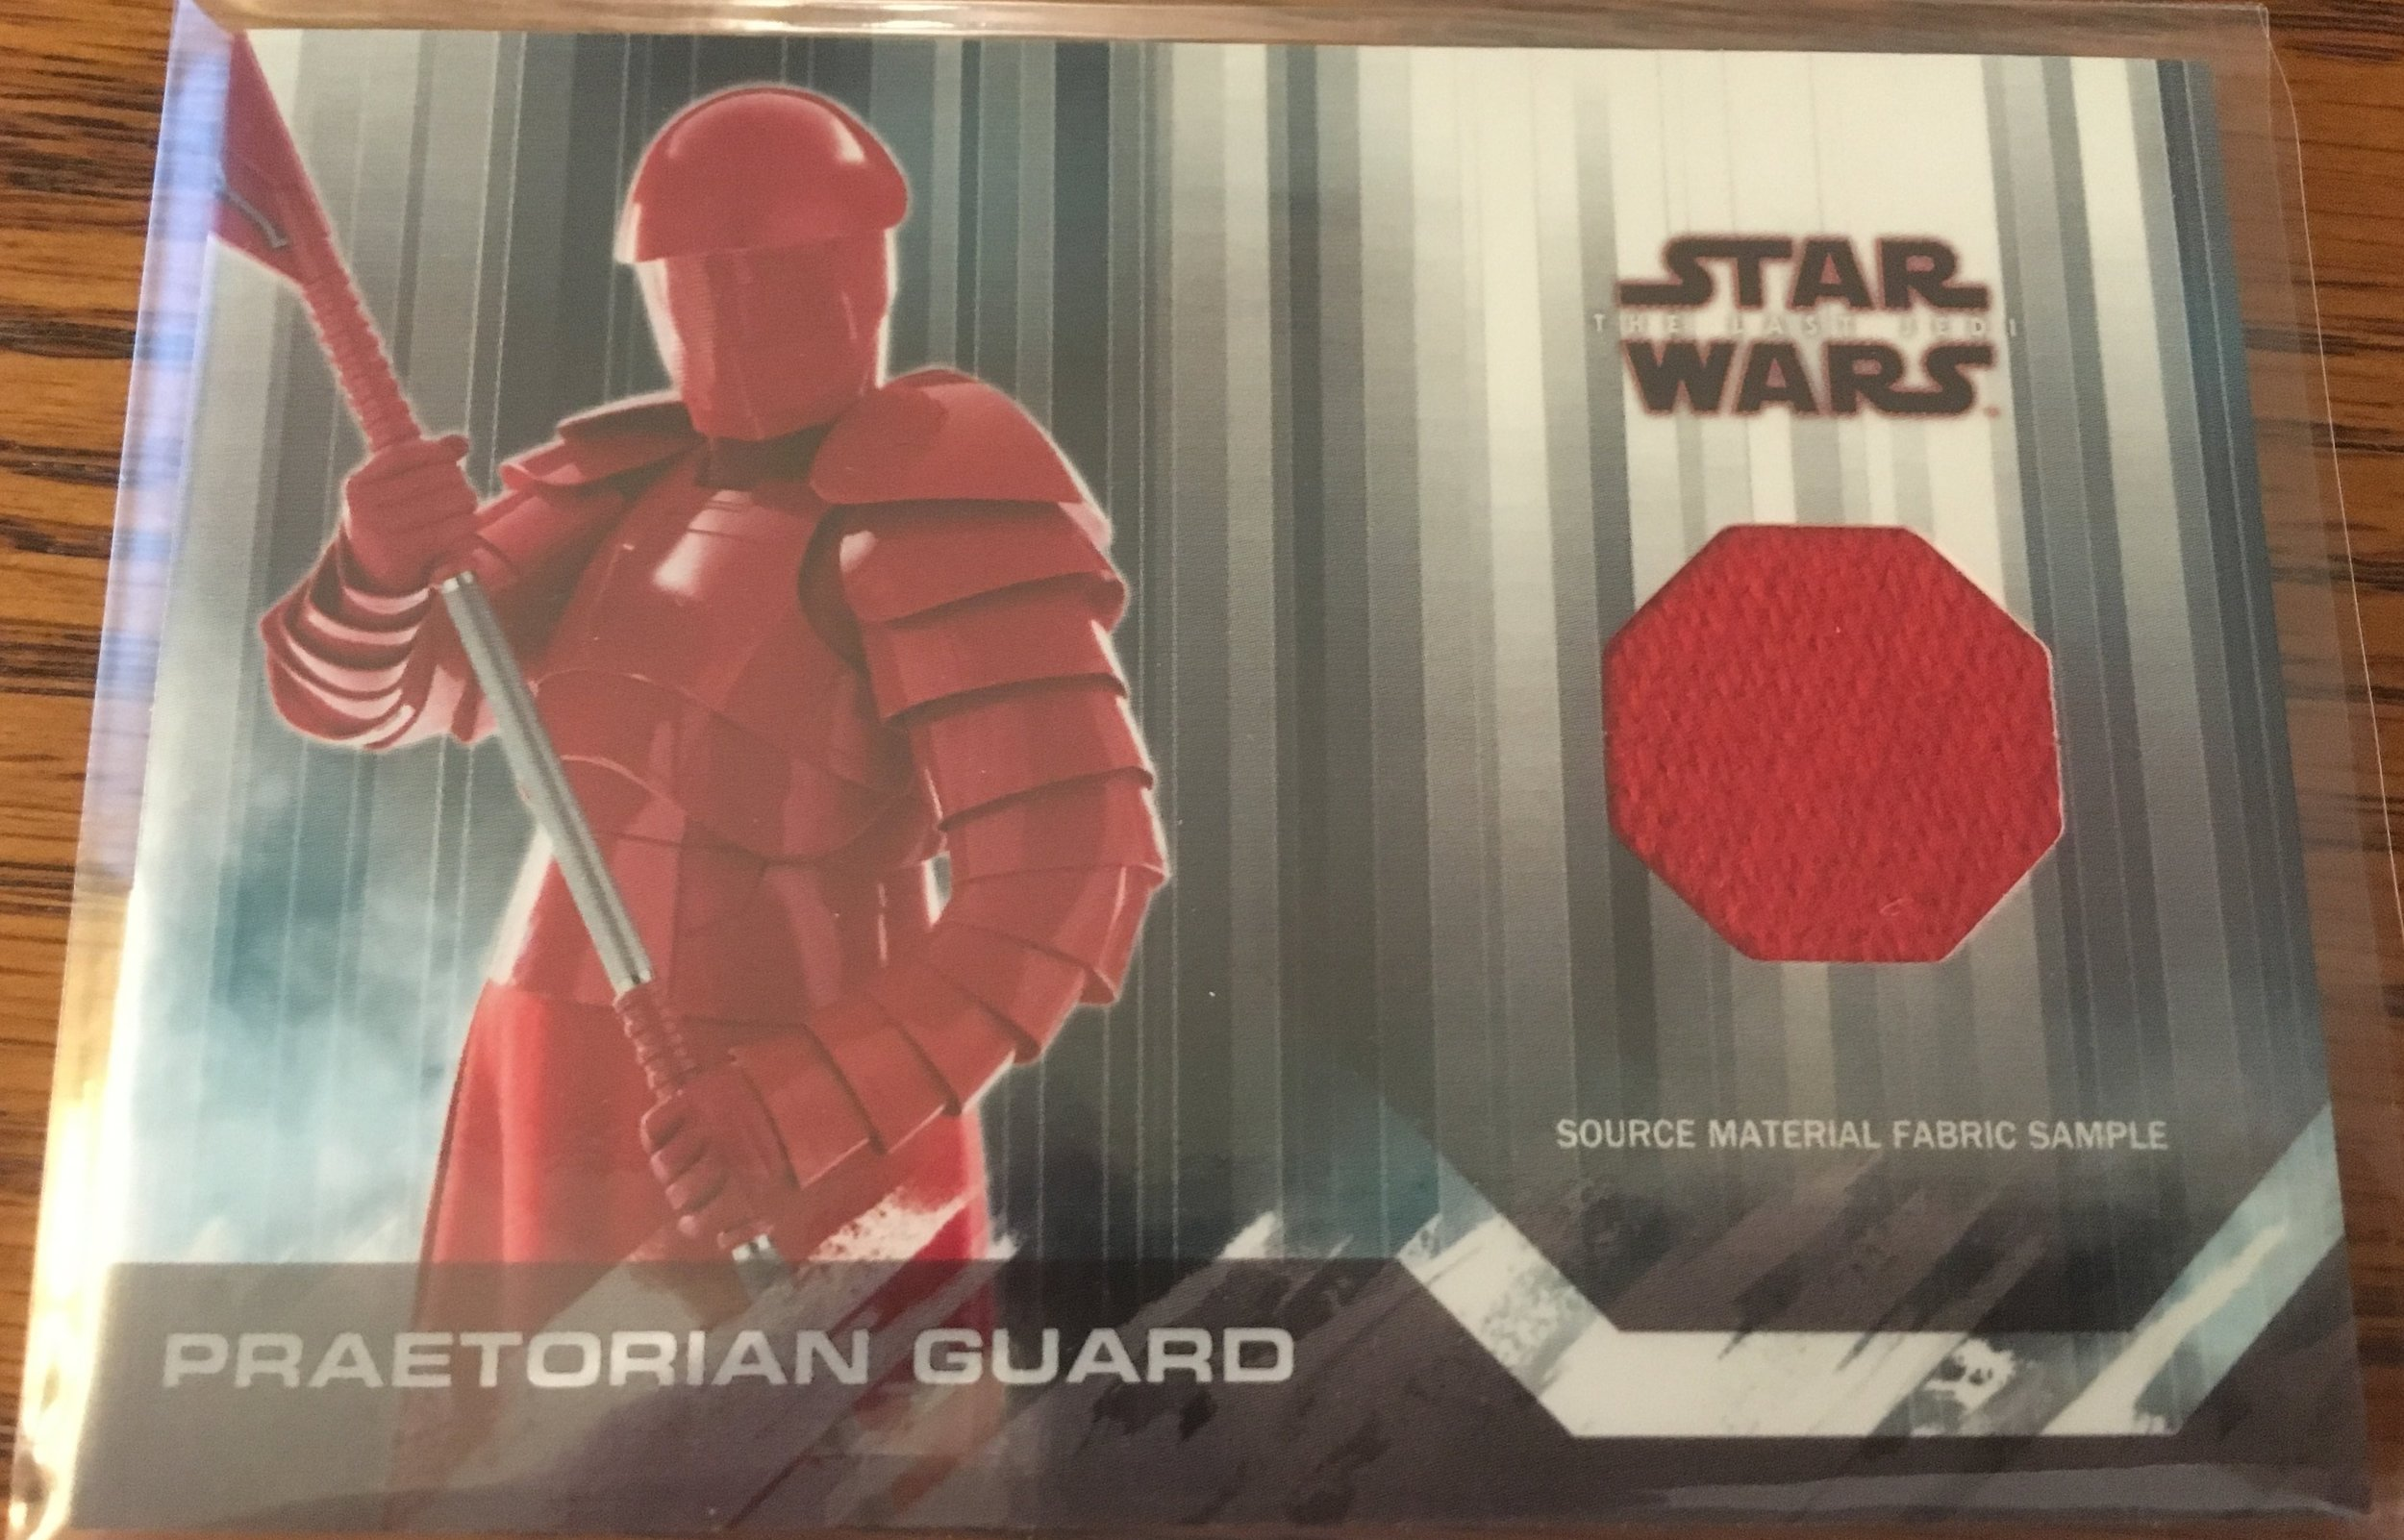 My Praetorian Guard fabric sample relic was a pretty nice find!